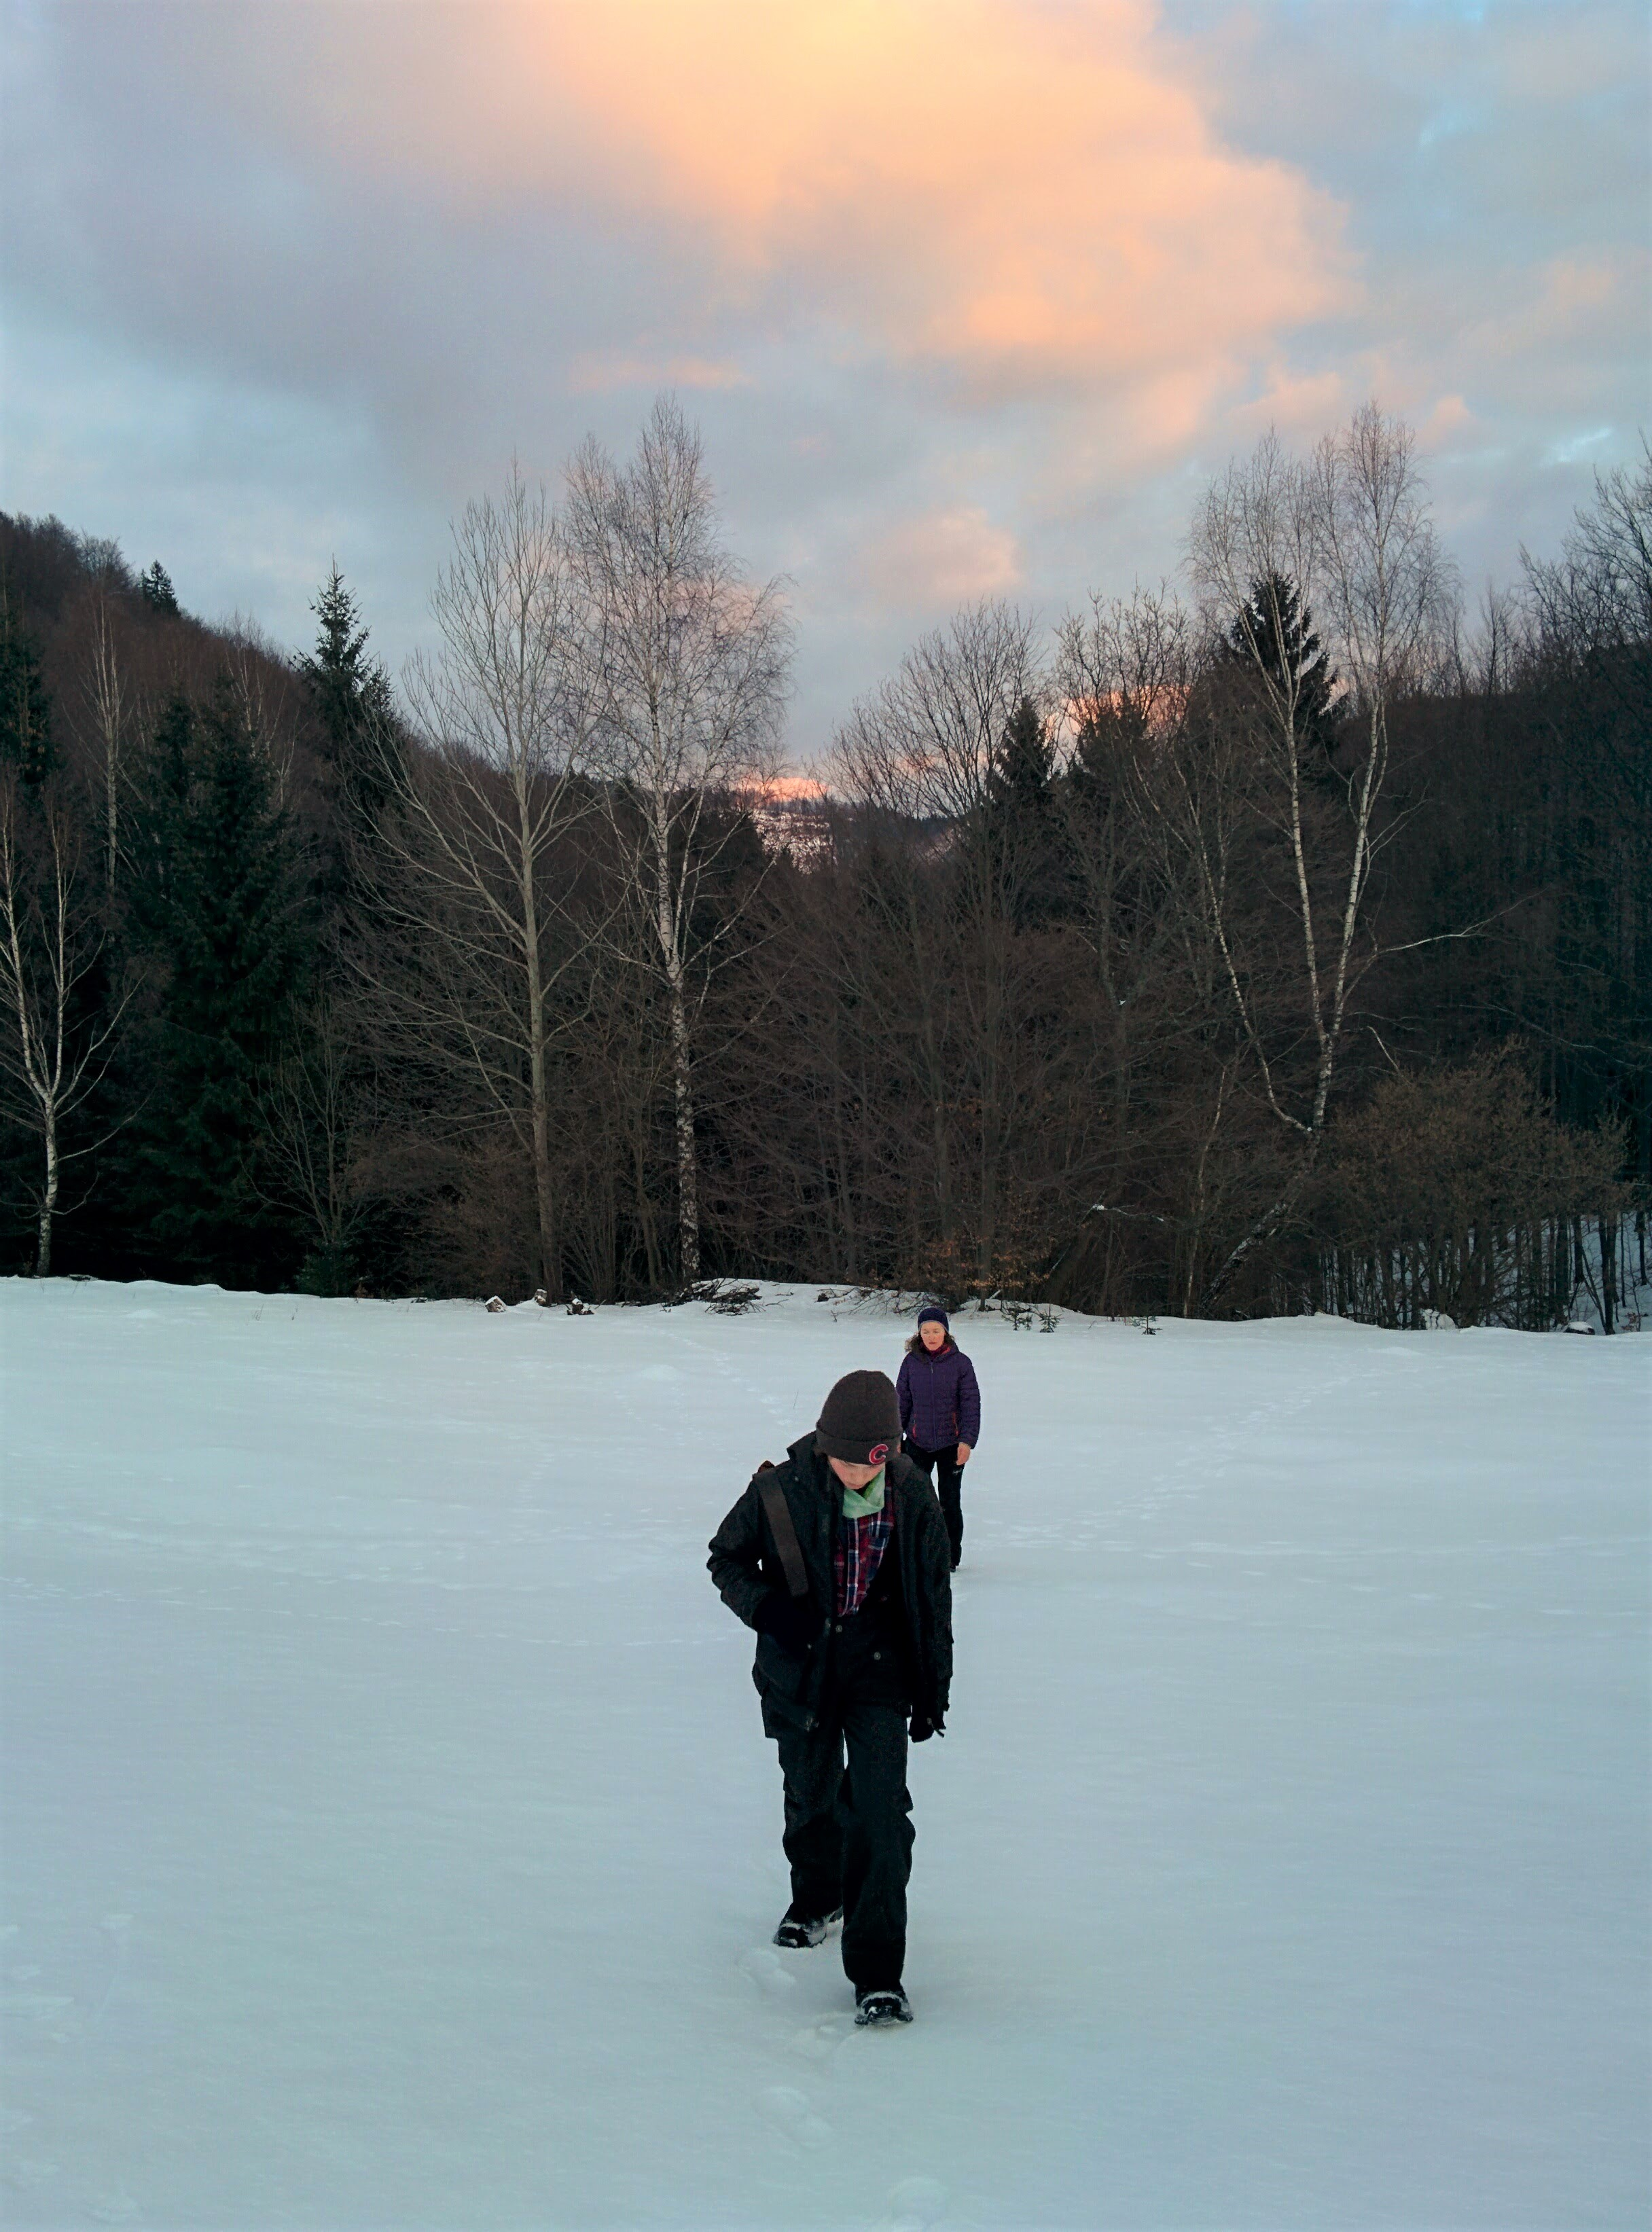 Coming back from a short Sunday hike on Fintova--a hill near our property.